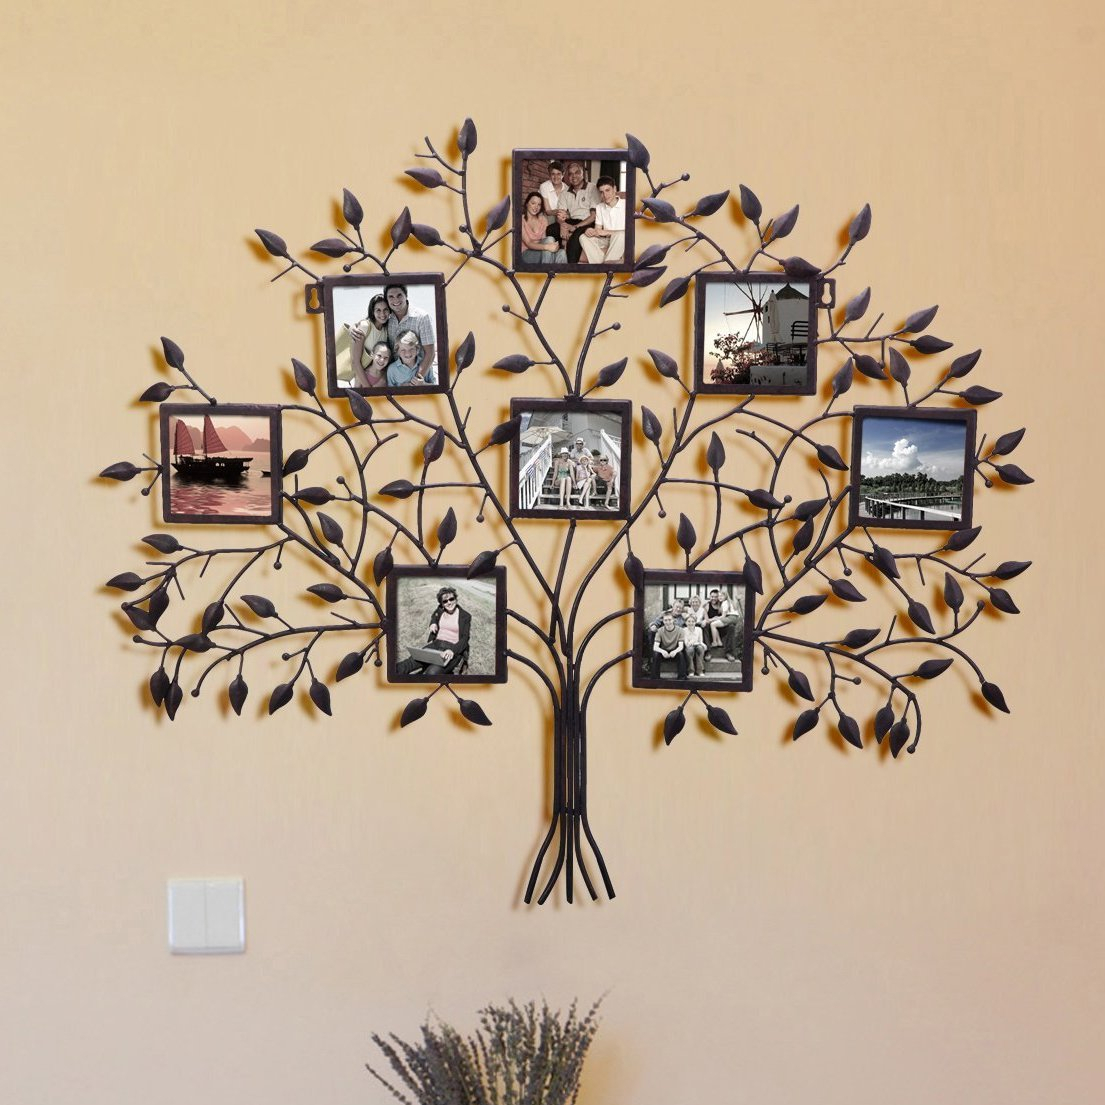 Farmhouse & Rustic Metal Picture Frames | Birch Lane With Millanocket Metal Wheel Photo Holder Wall Decor (View 11 of 30)